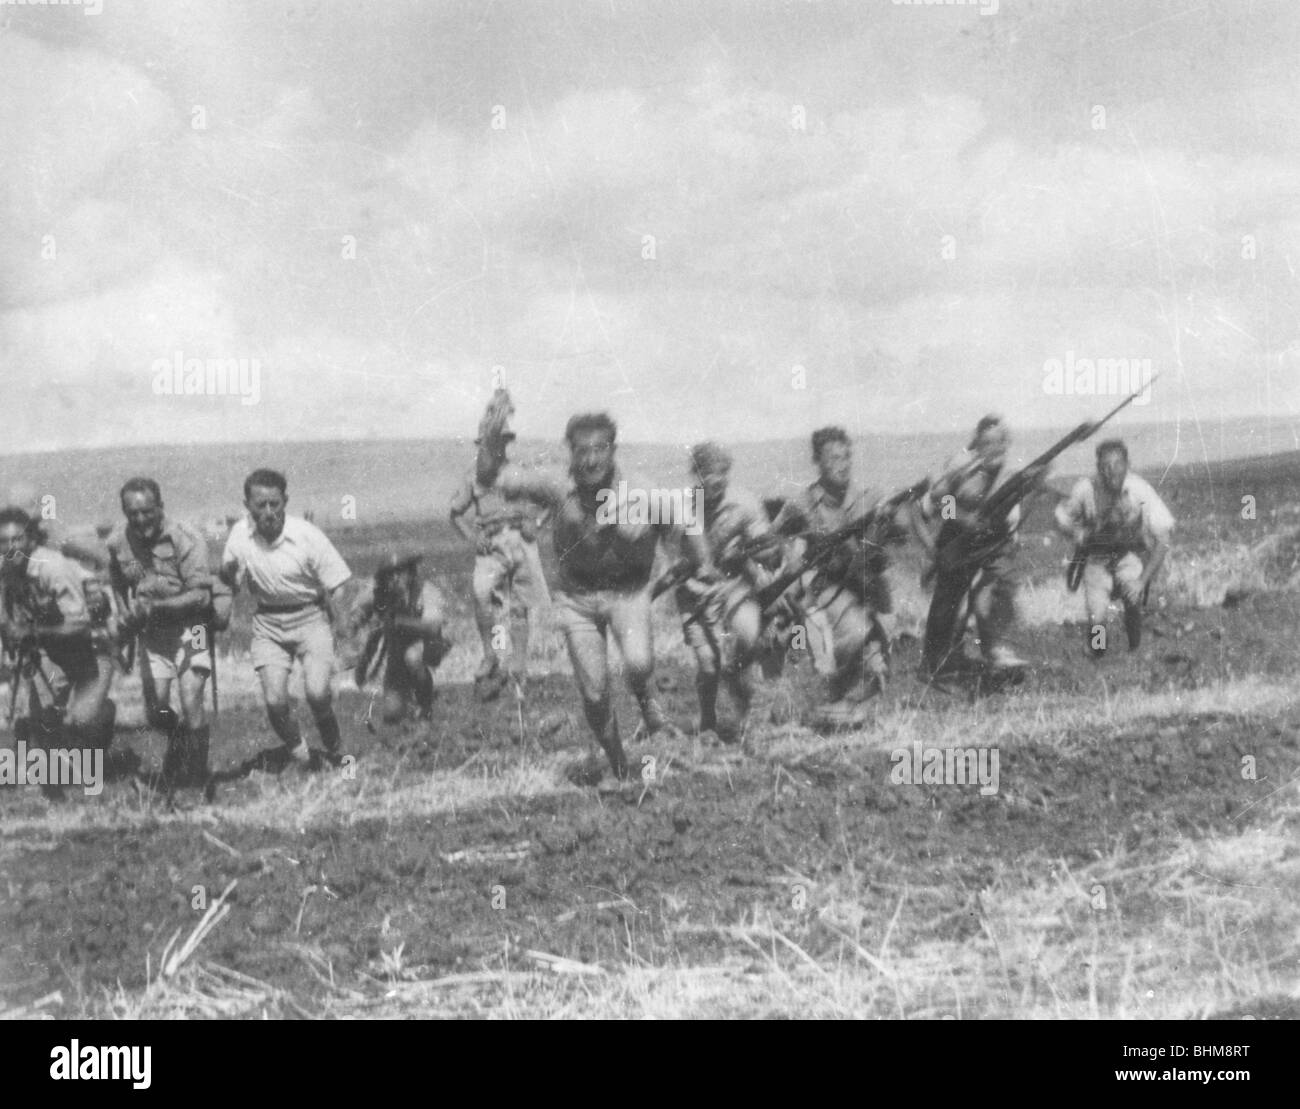 Special Night Squads training in Palestine, late 1930s. - Stock Image